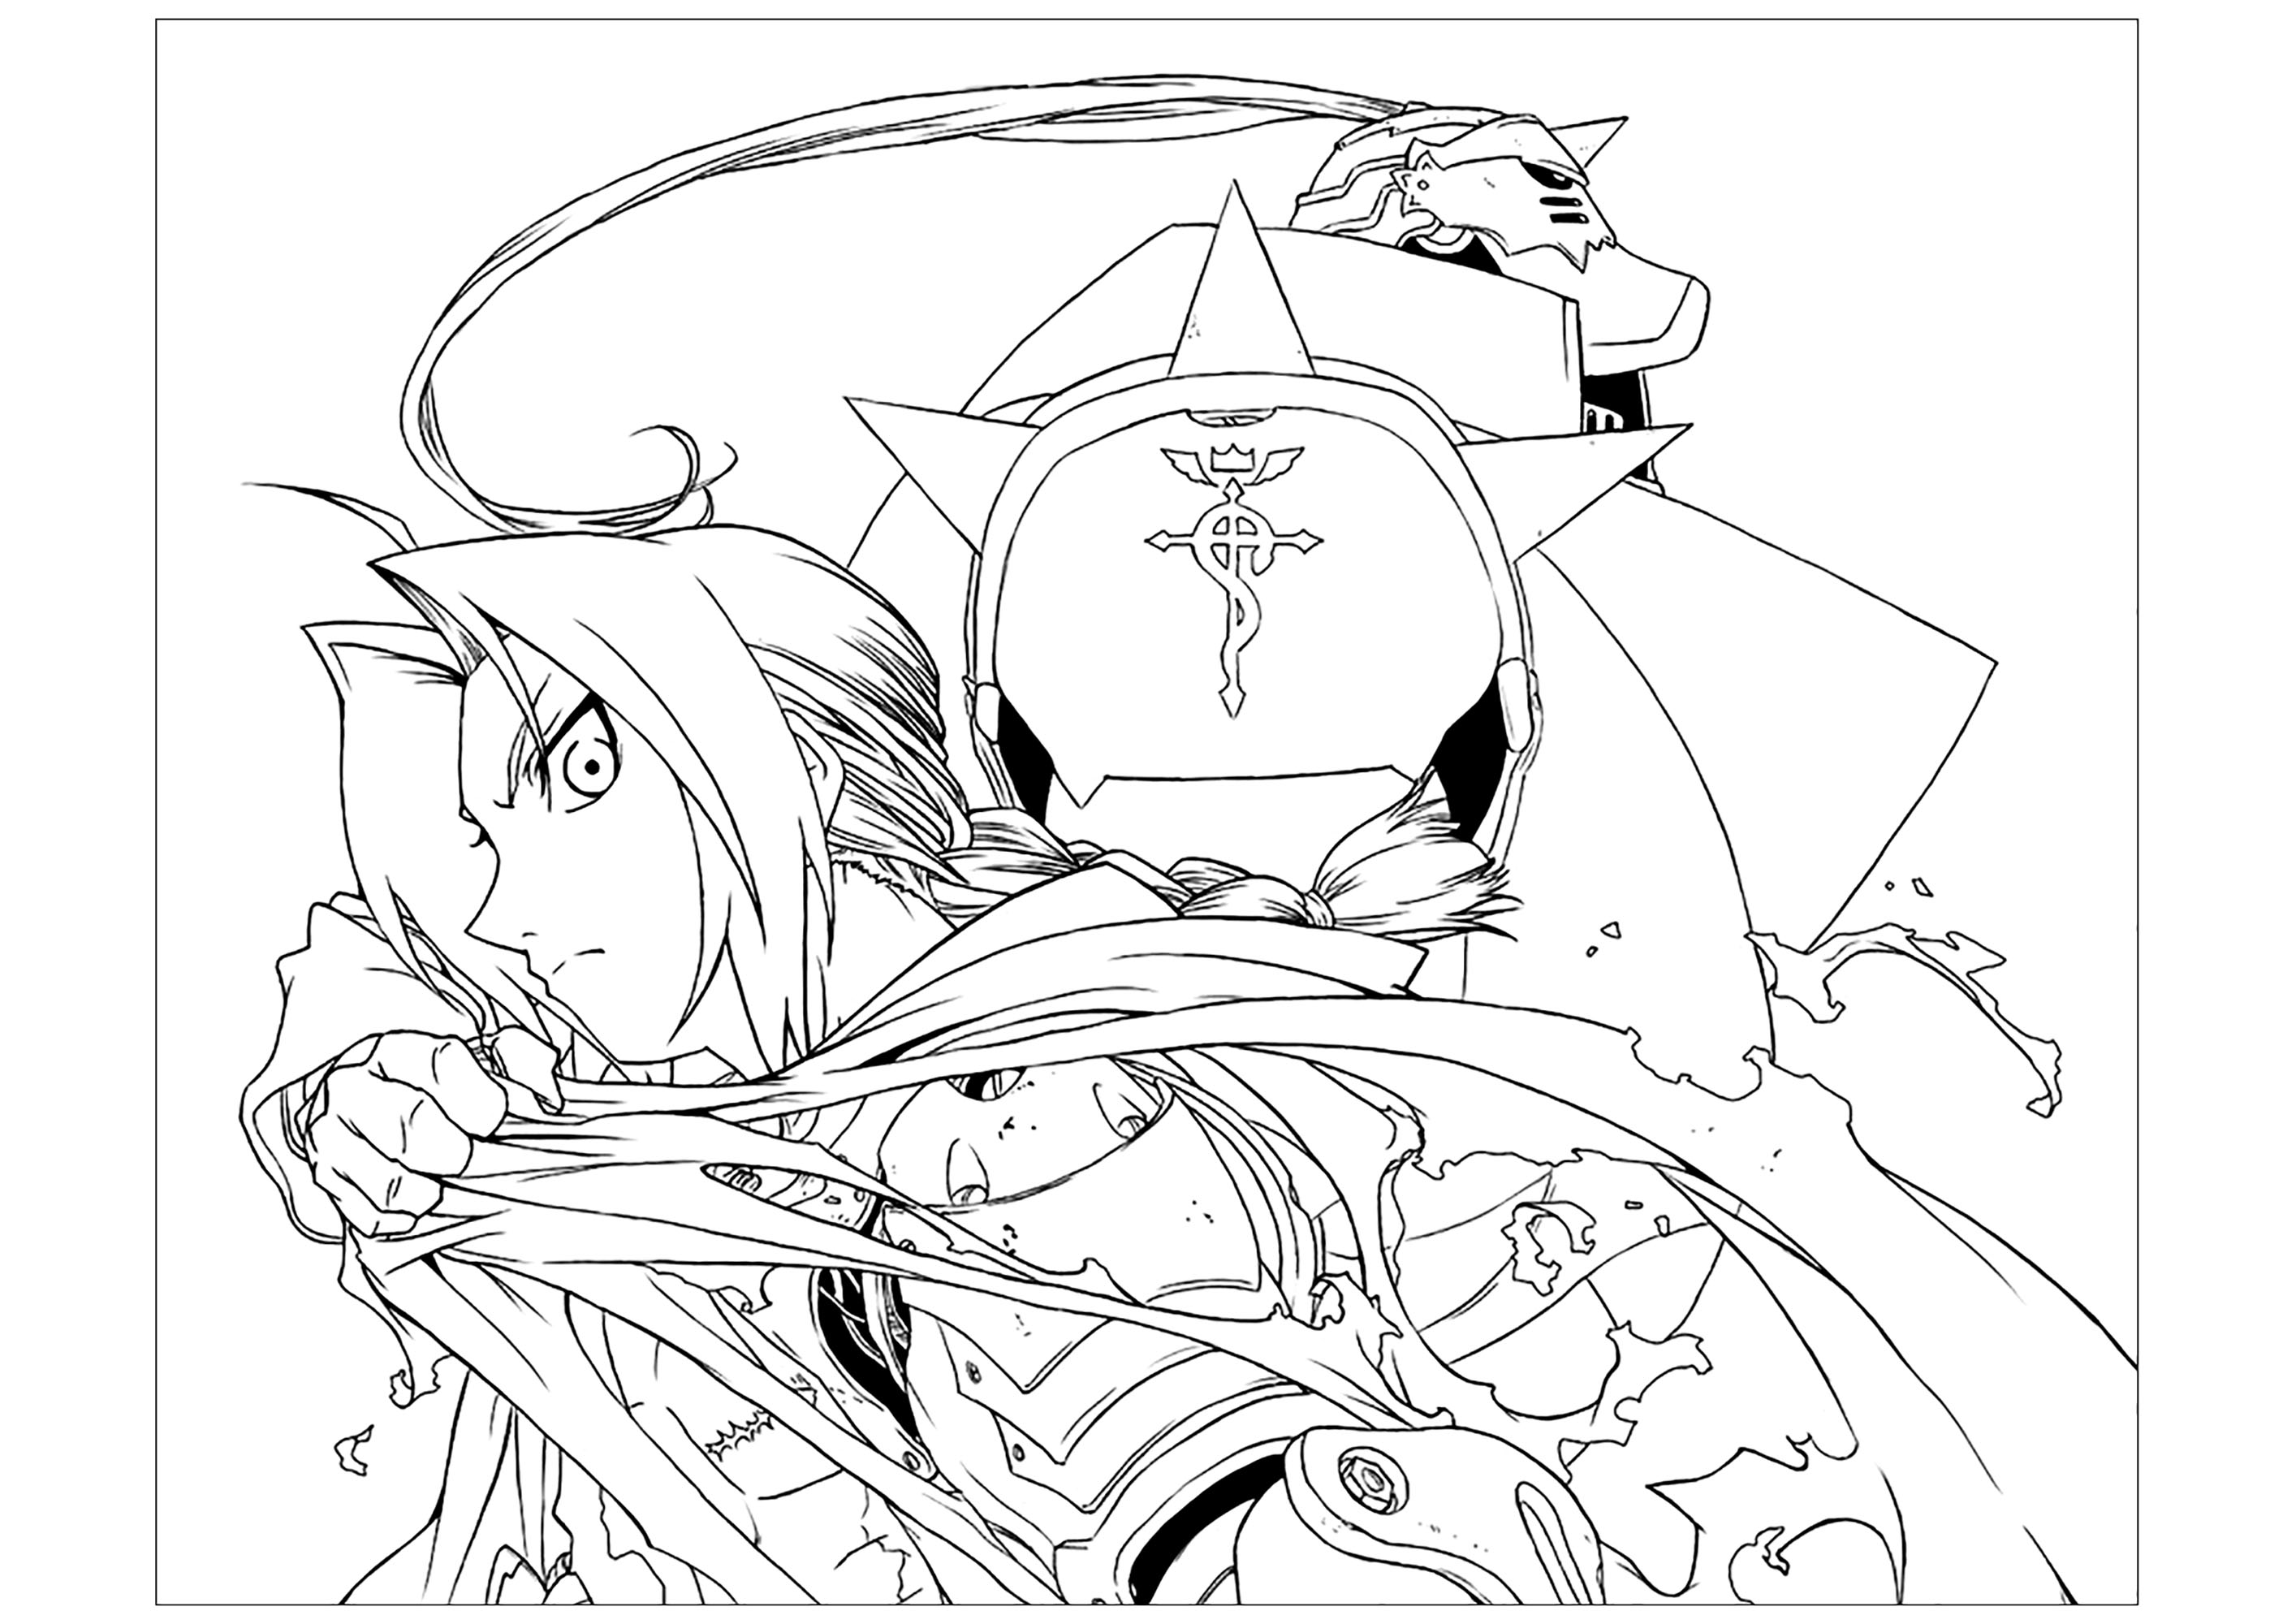 Funny Full Metal Alchemist coloring page for children